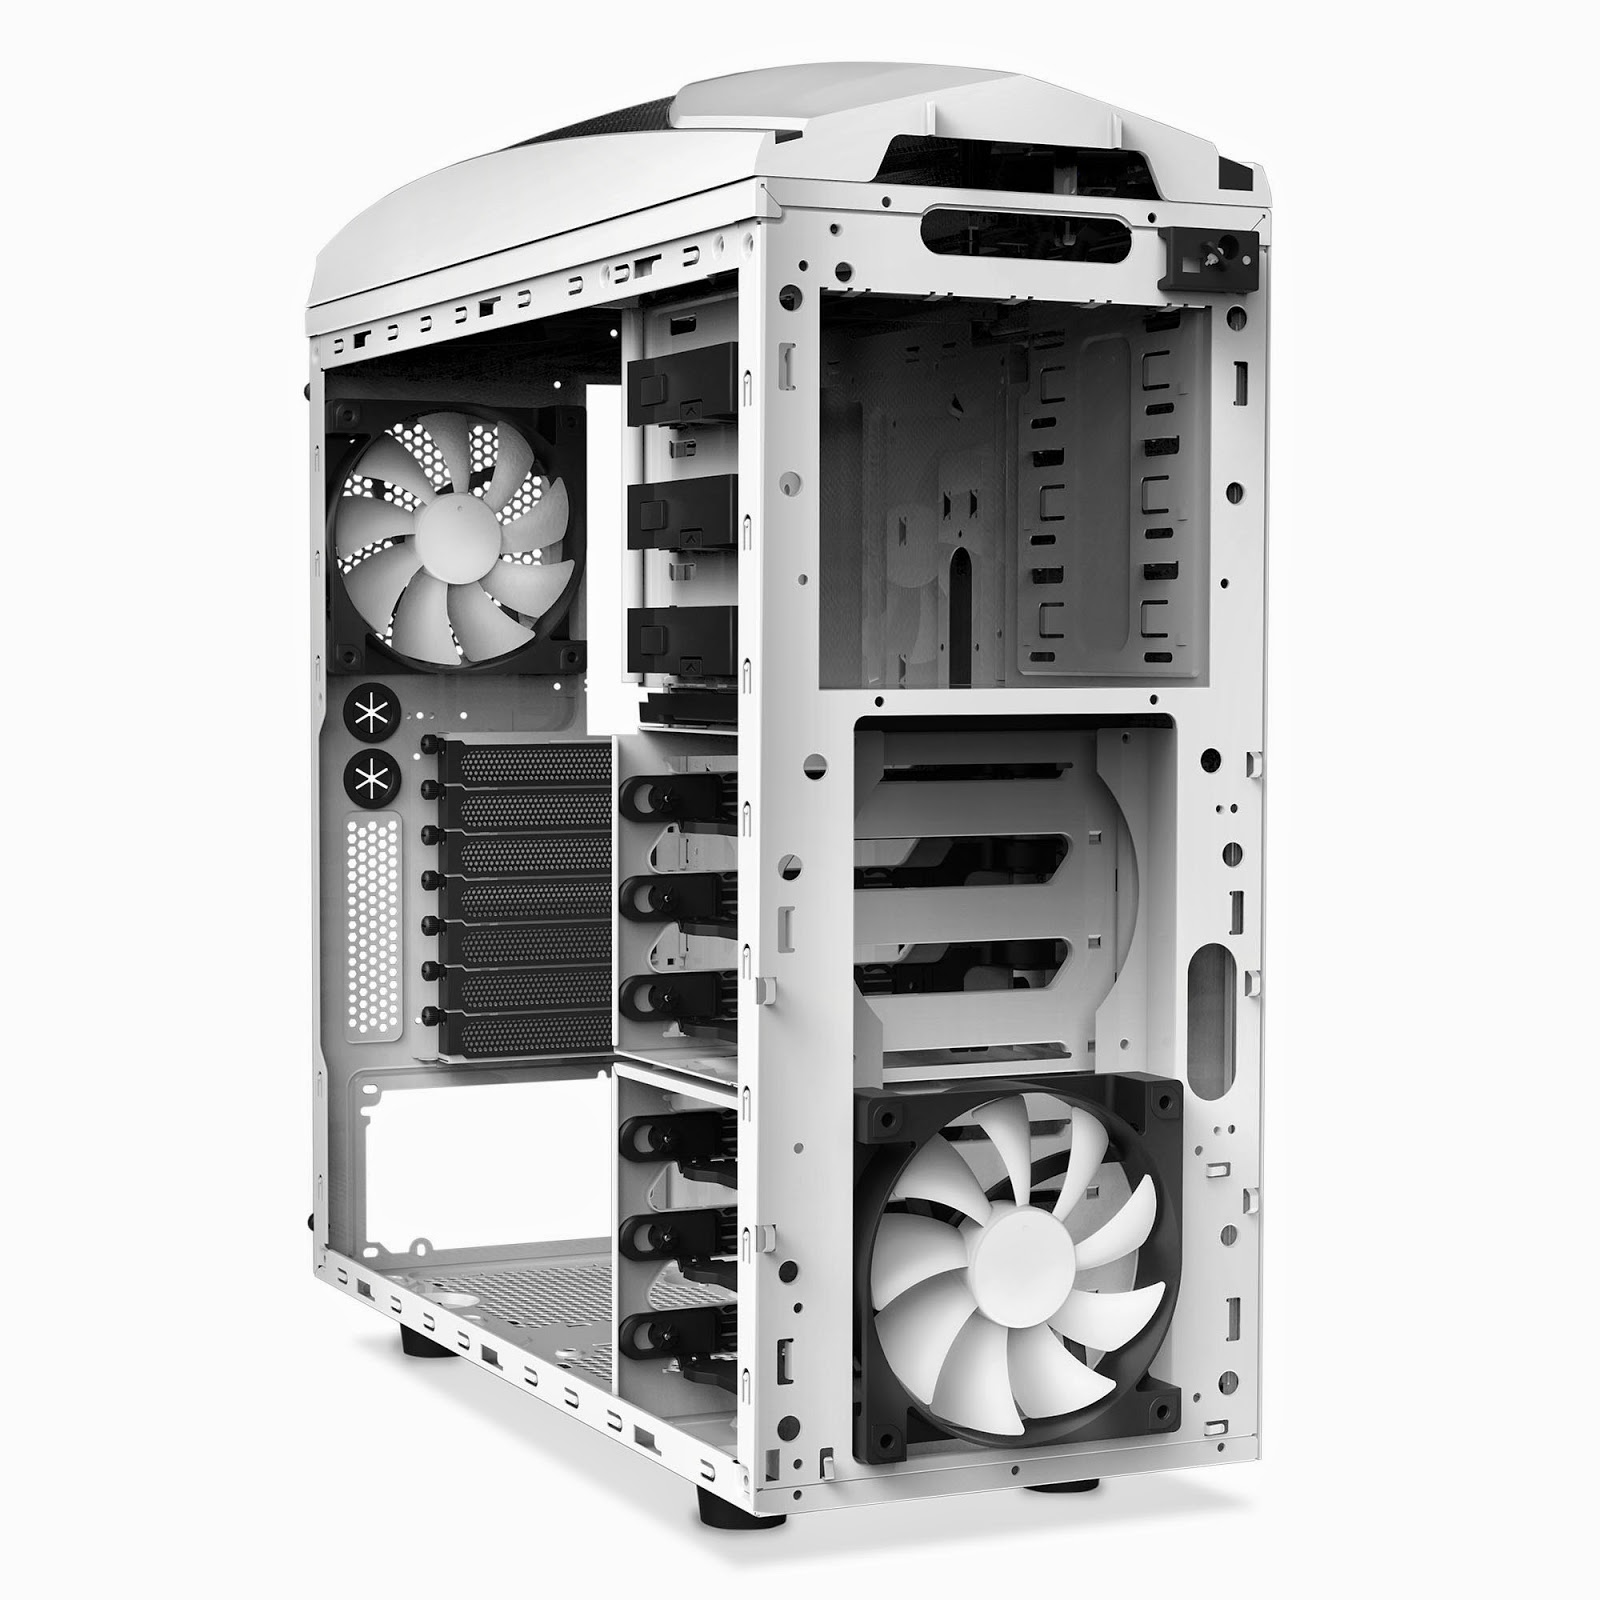 NZXT Announces Release of the Phantom 240 Mid-Tower Chassis 11